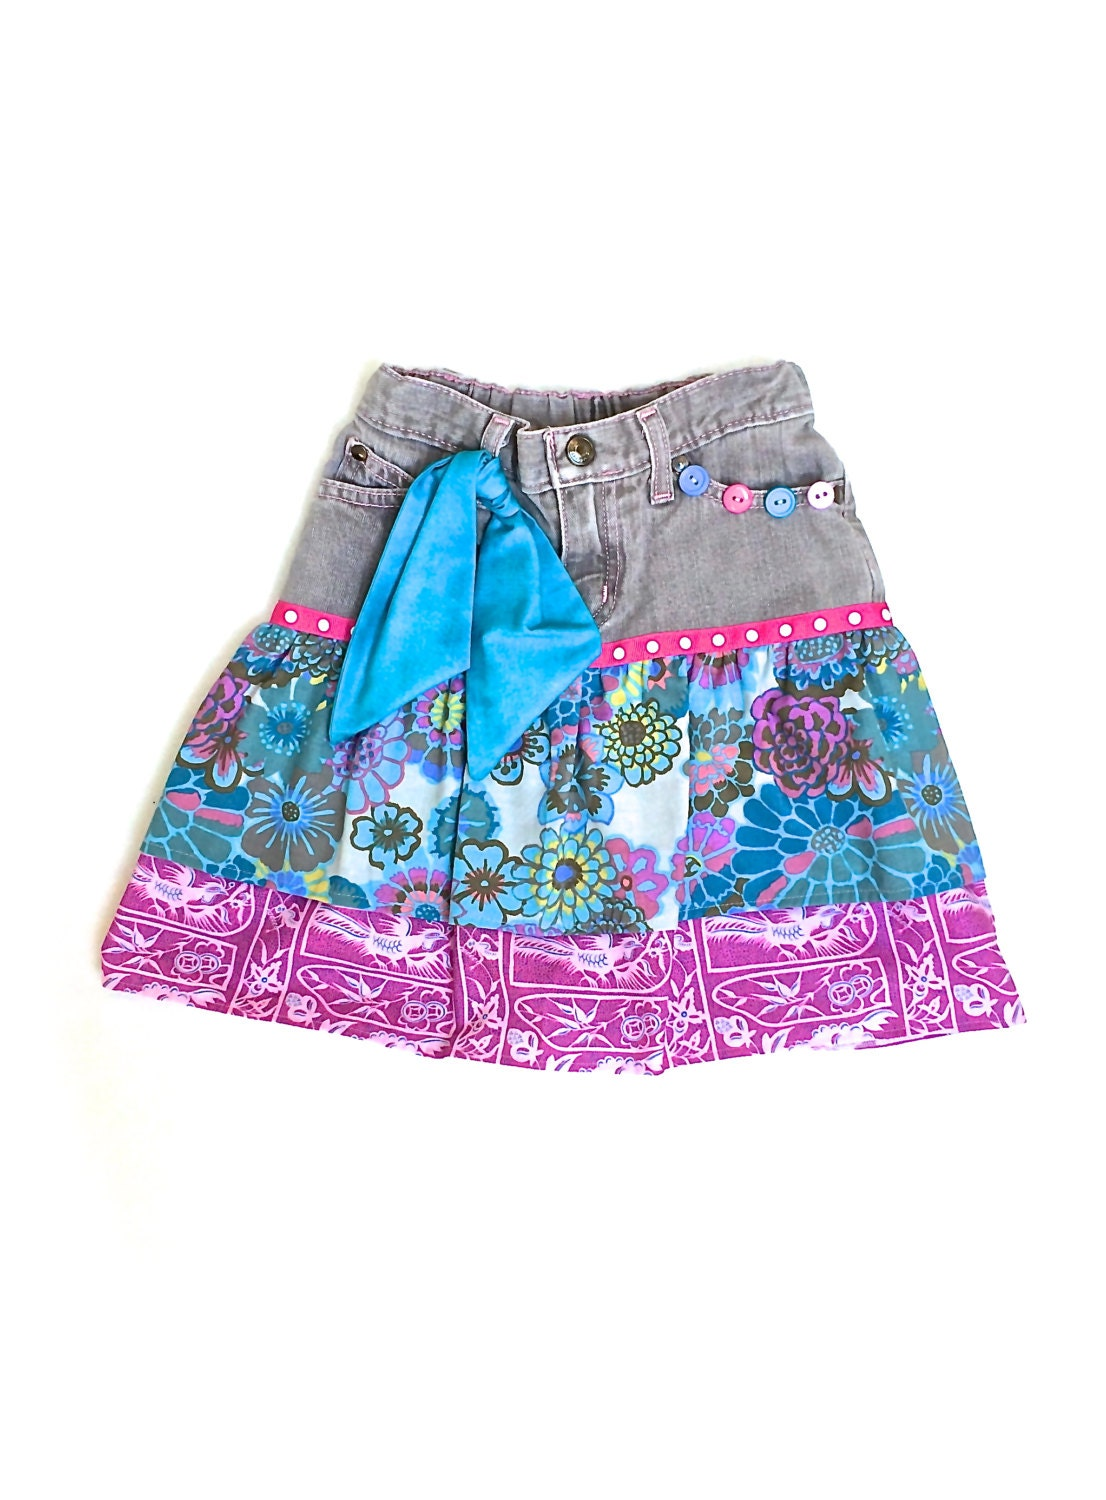 upcycled denim skirt pink and blue size 6 by